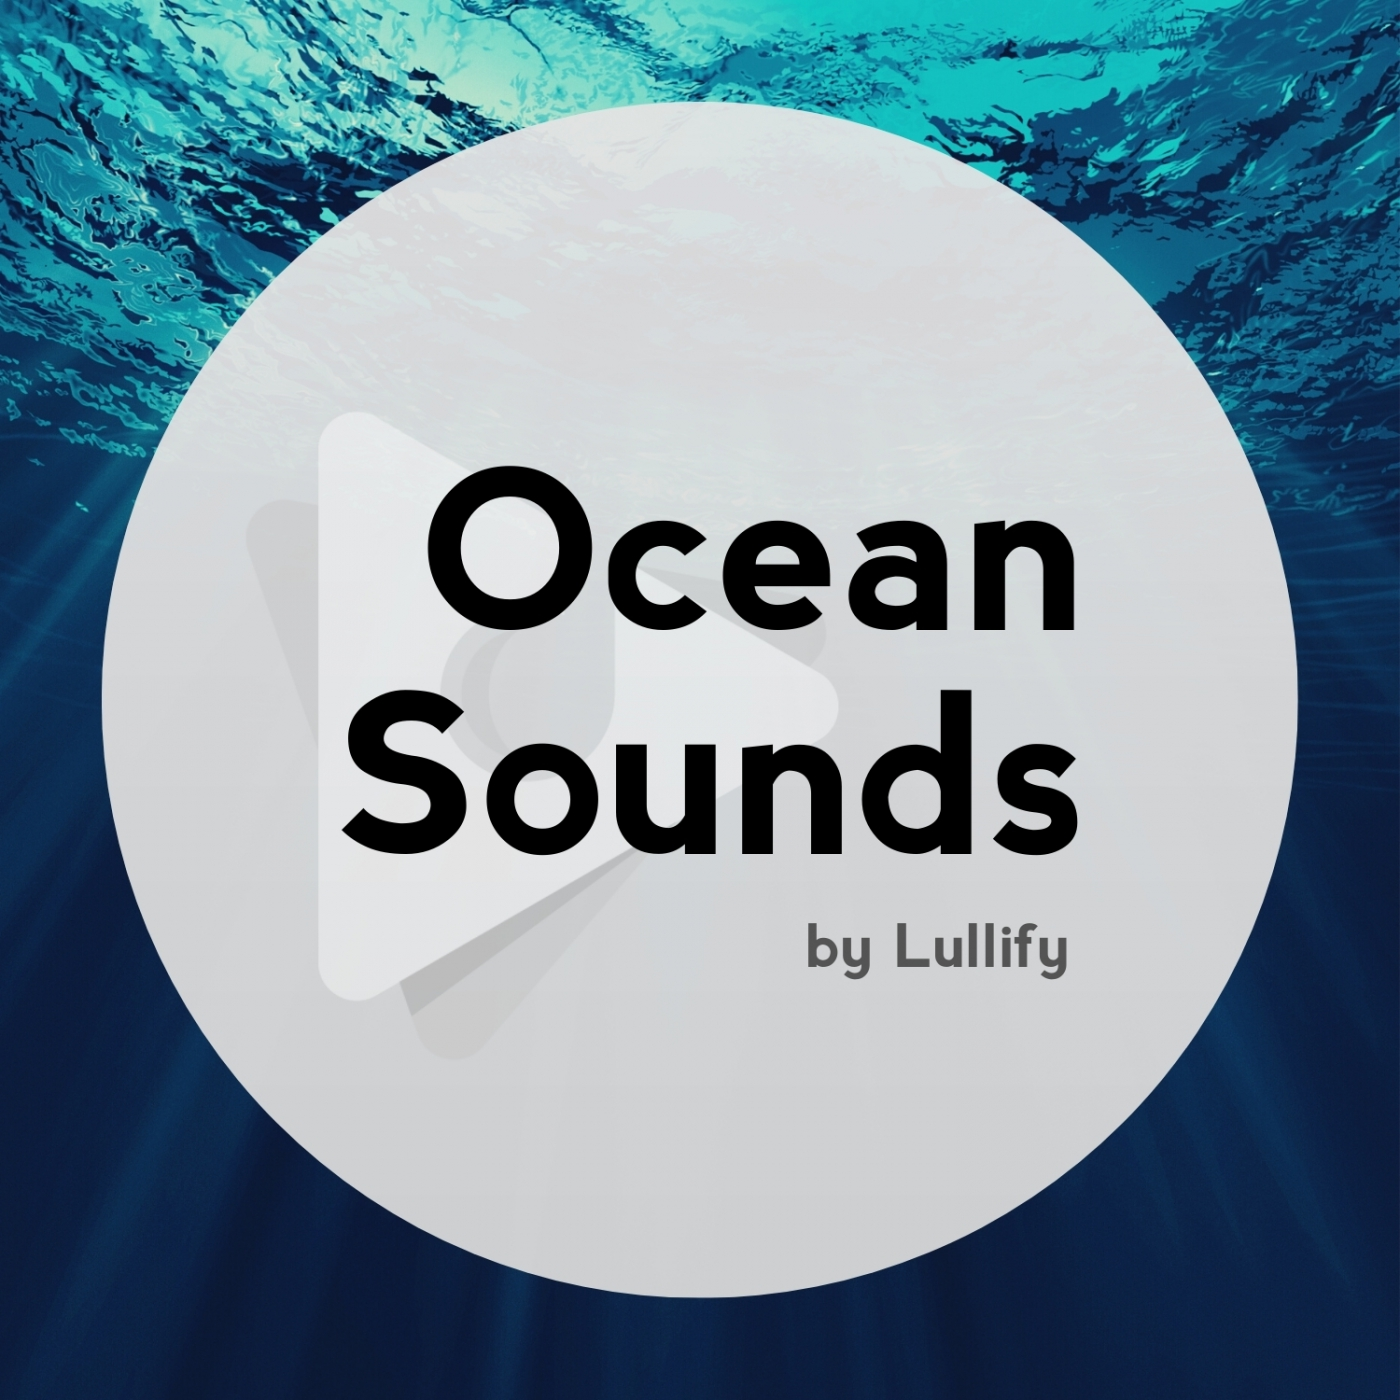 Ocean Sounds by Lullify